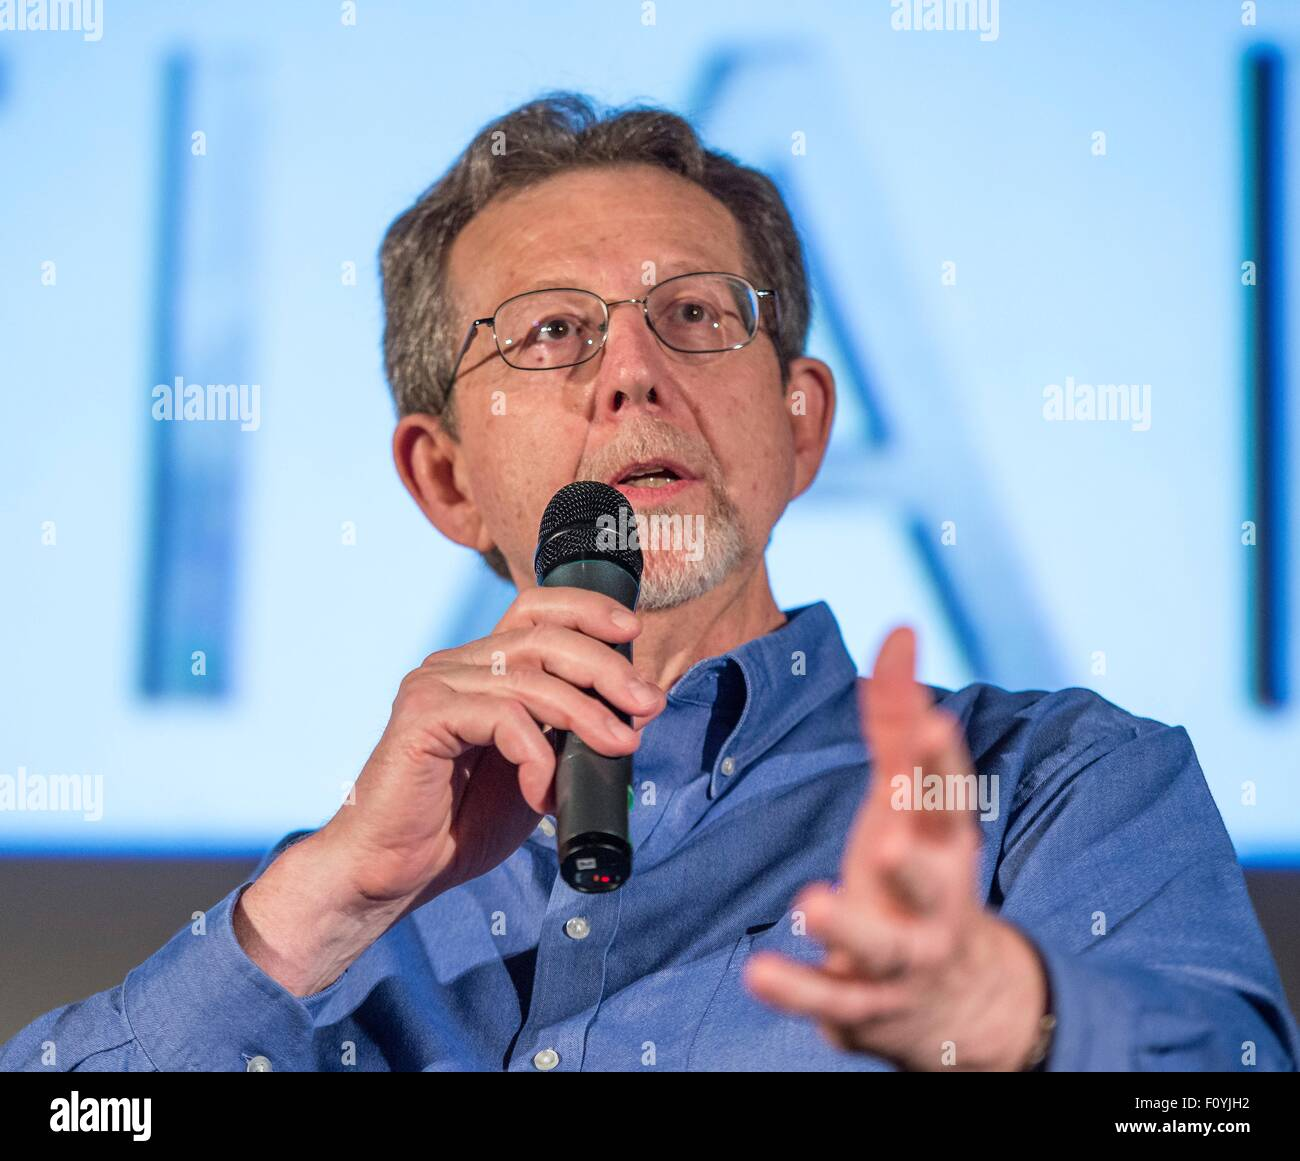 Jim Green, Director of the Planetary Science Division, participates in a question and answer session about Mars - Stock Image